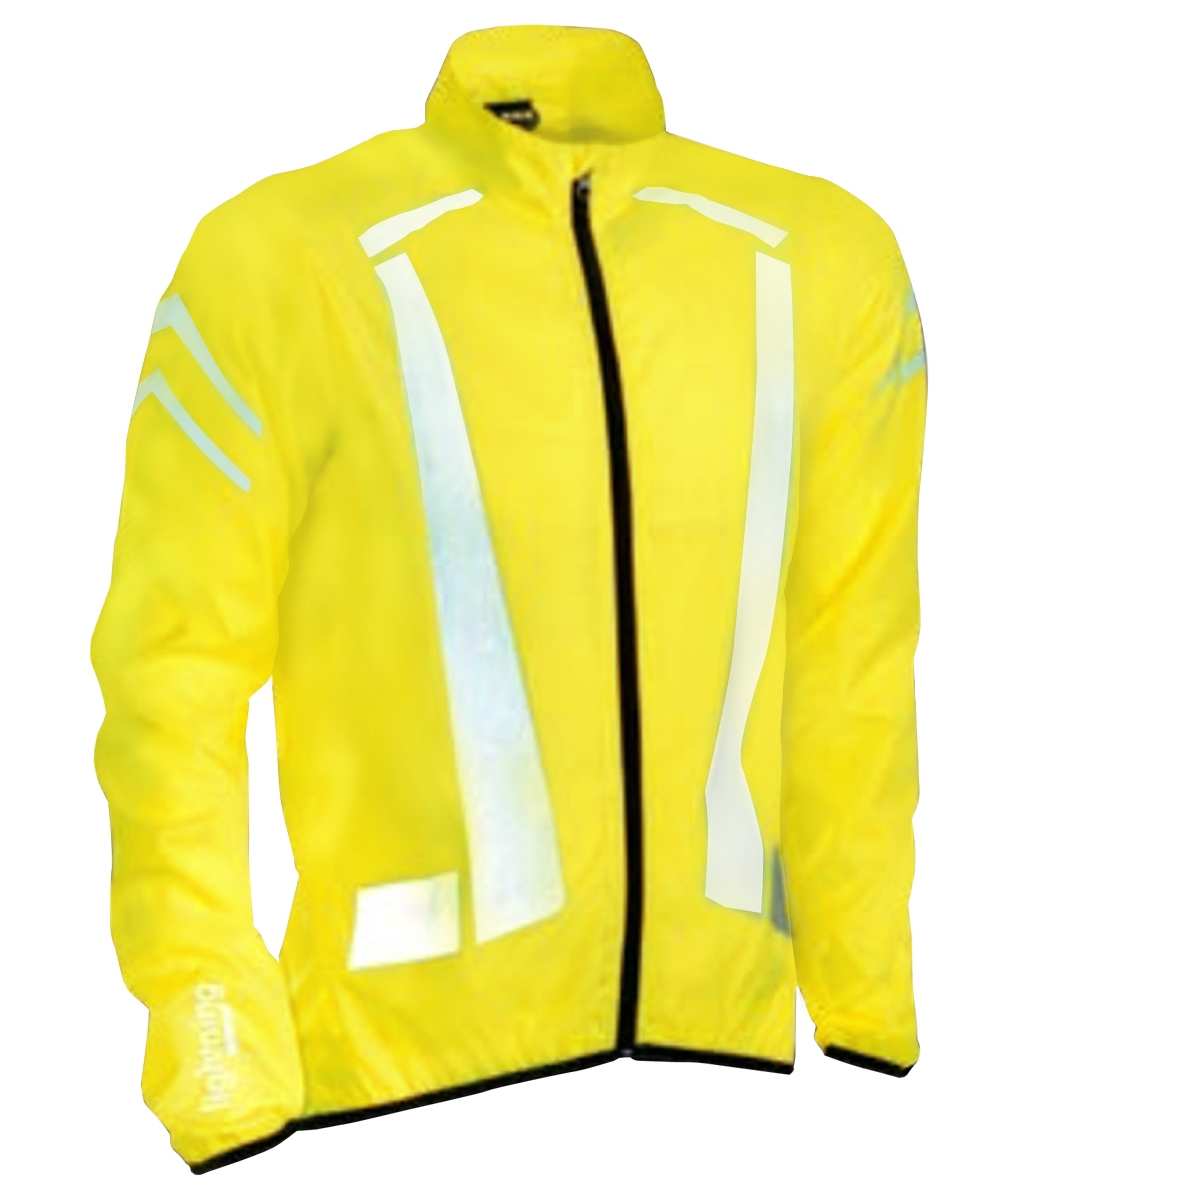 Veste vélo Wowow fluo lightning Taille L